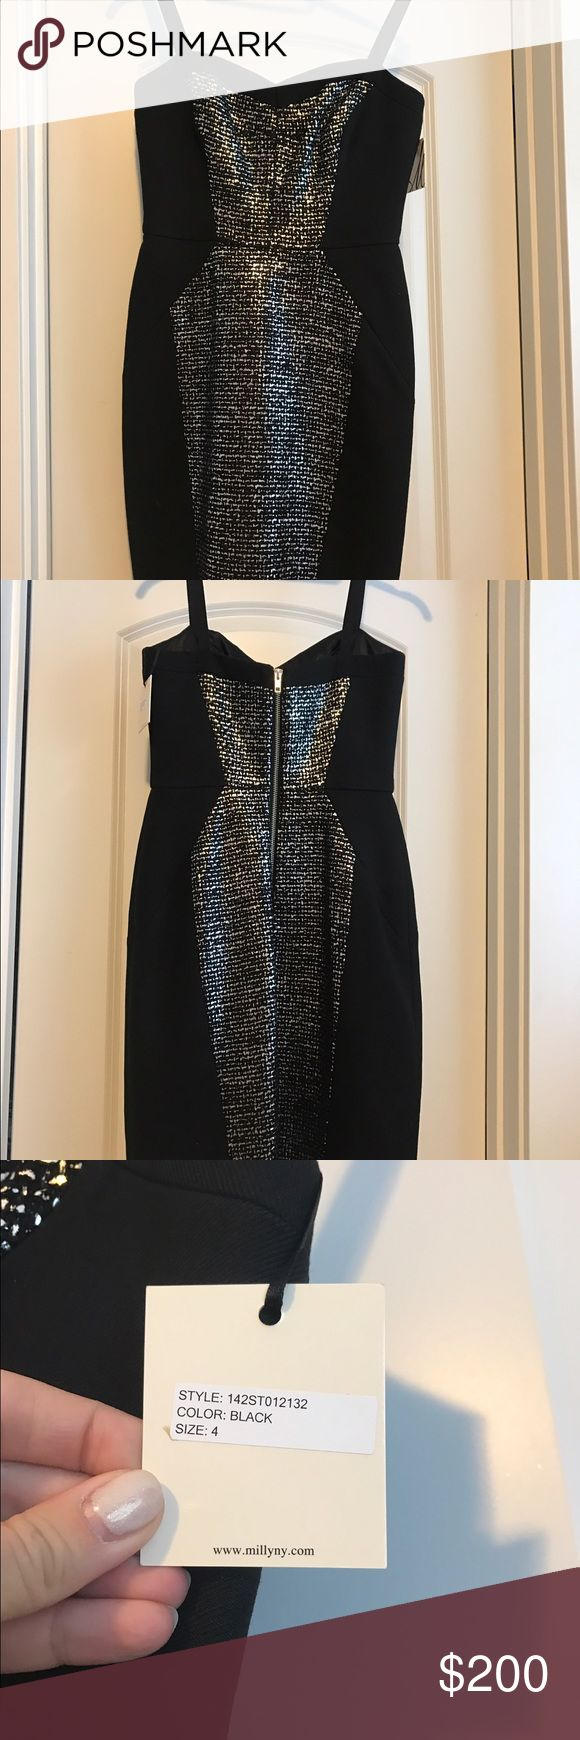 NWT Milly metallic cocktail dress with straps Gorgeous new with tags, never worn Milly cocktail dress with metallic tweed. The shape of the metallic is super flattering. Exposed zipper in back. Straps would be very easy to cut off and wear as strapless style. This is a winter cocktail dress- very tough to find! Size 4 Milly Dresses